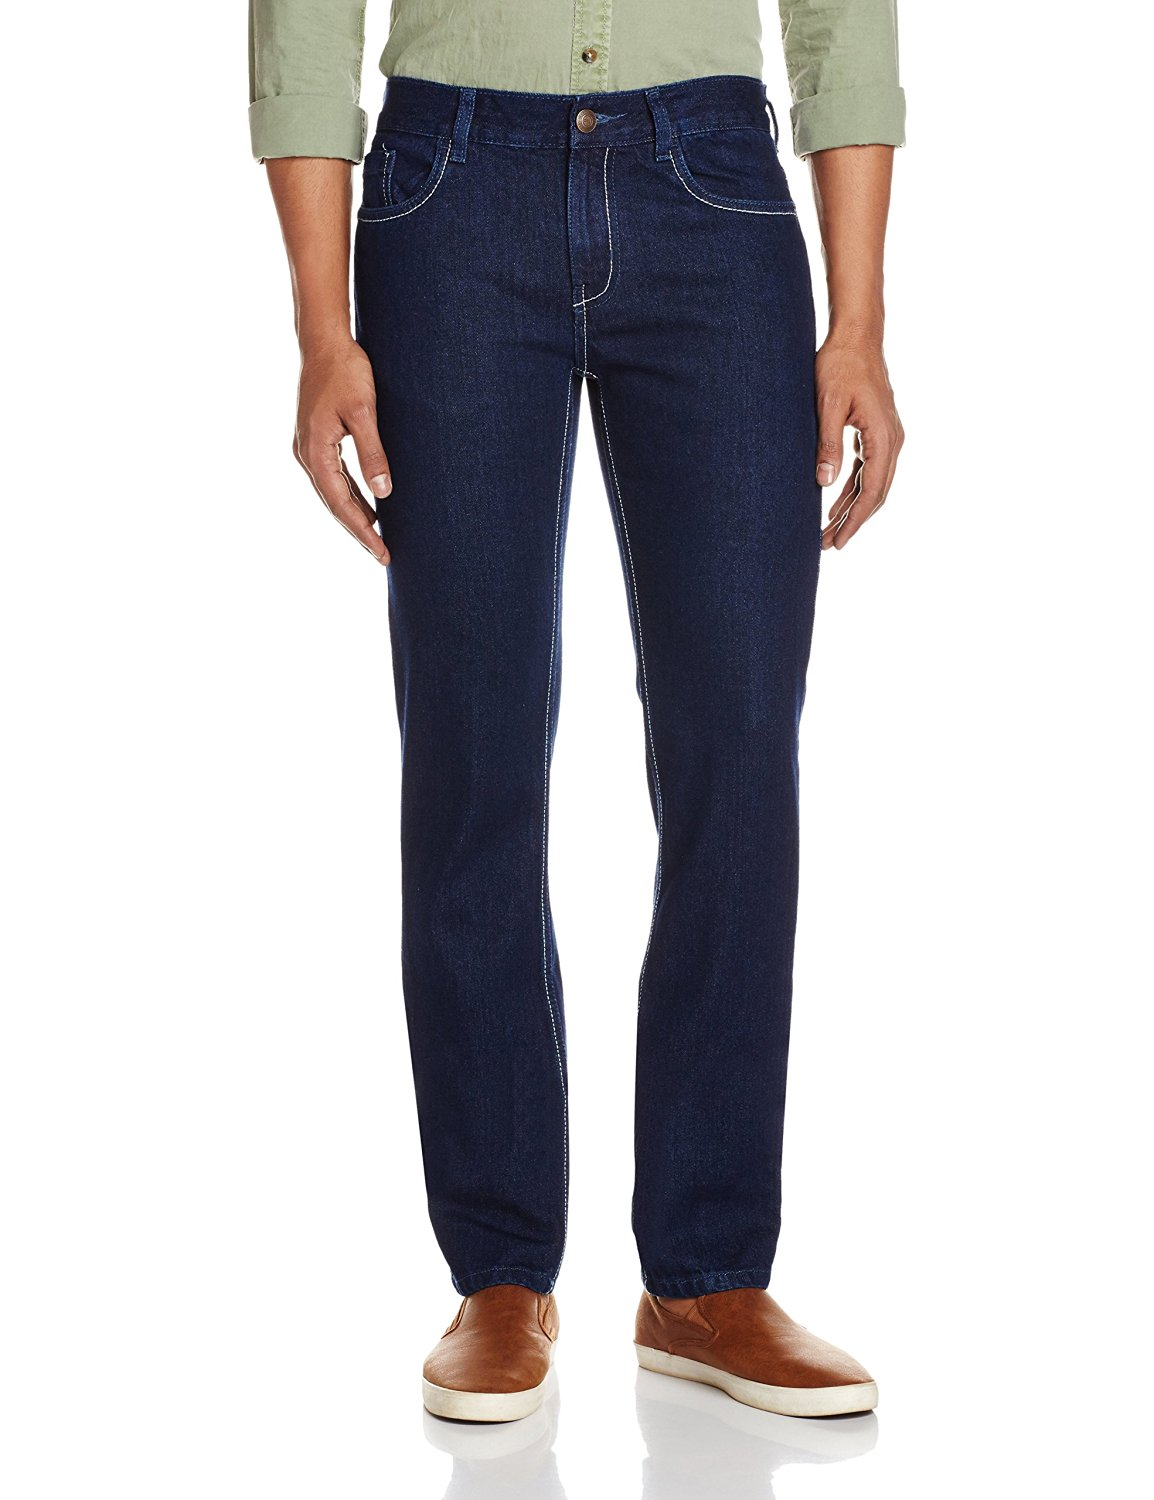 Newport Mens Jeans Upto 65% OFF Starts Rs.349 discount offer